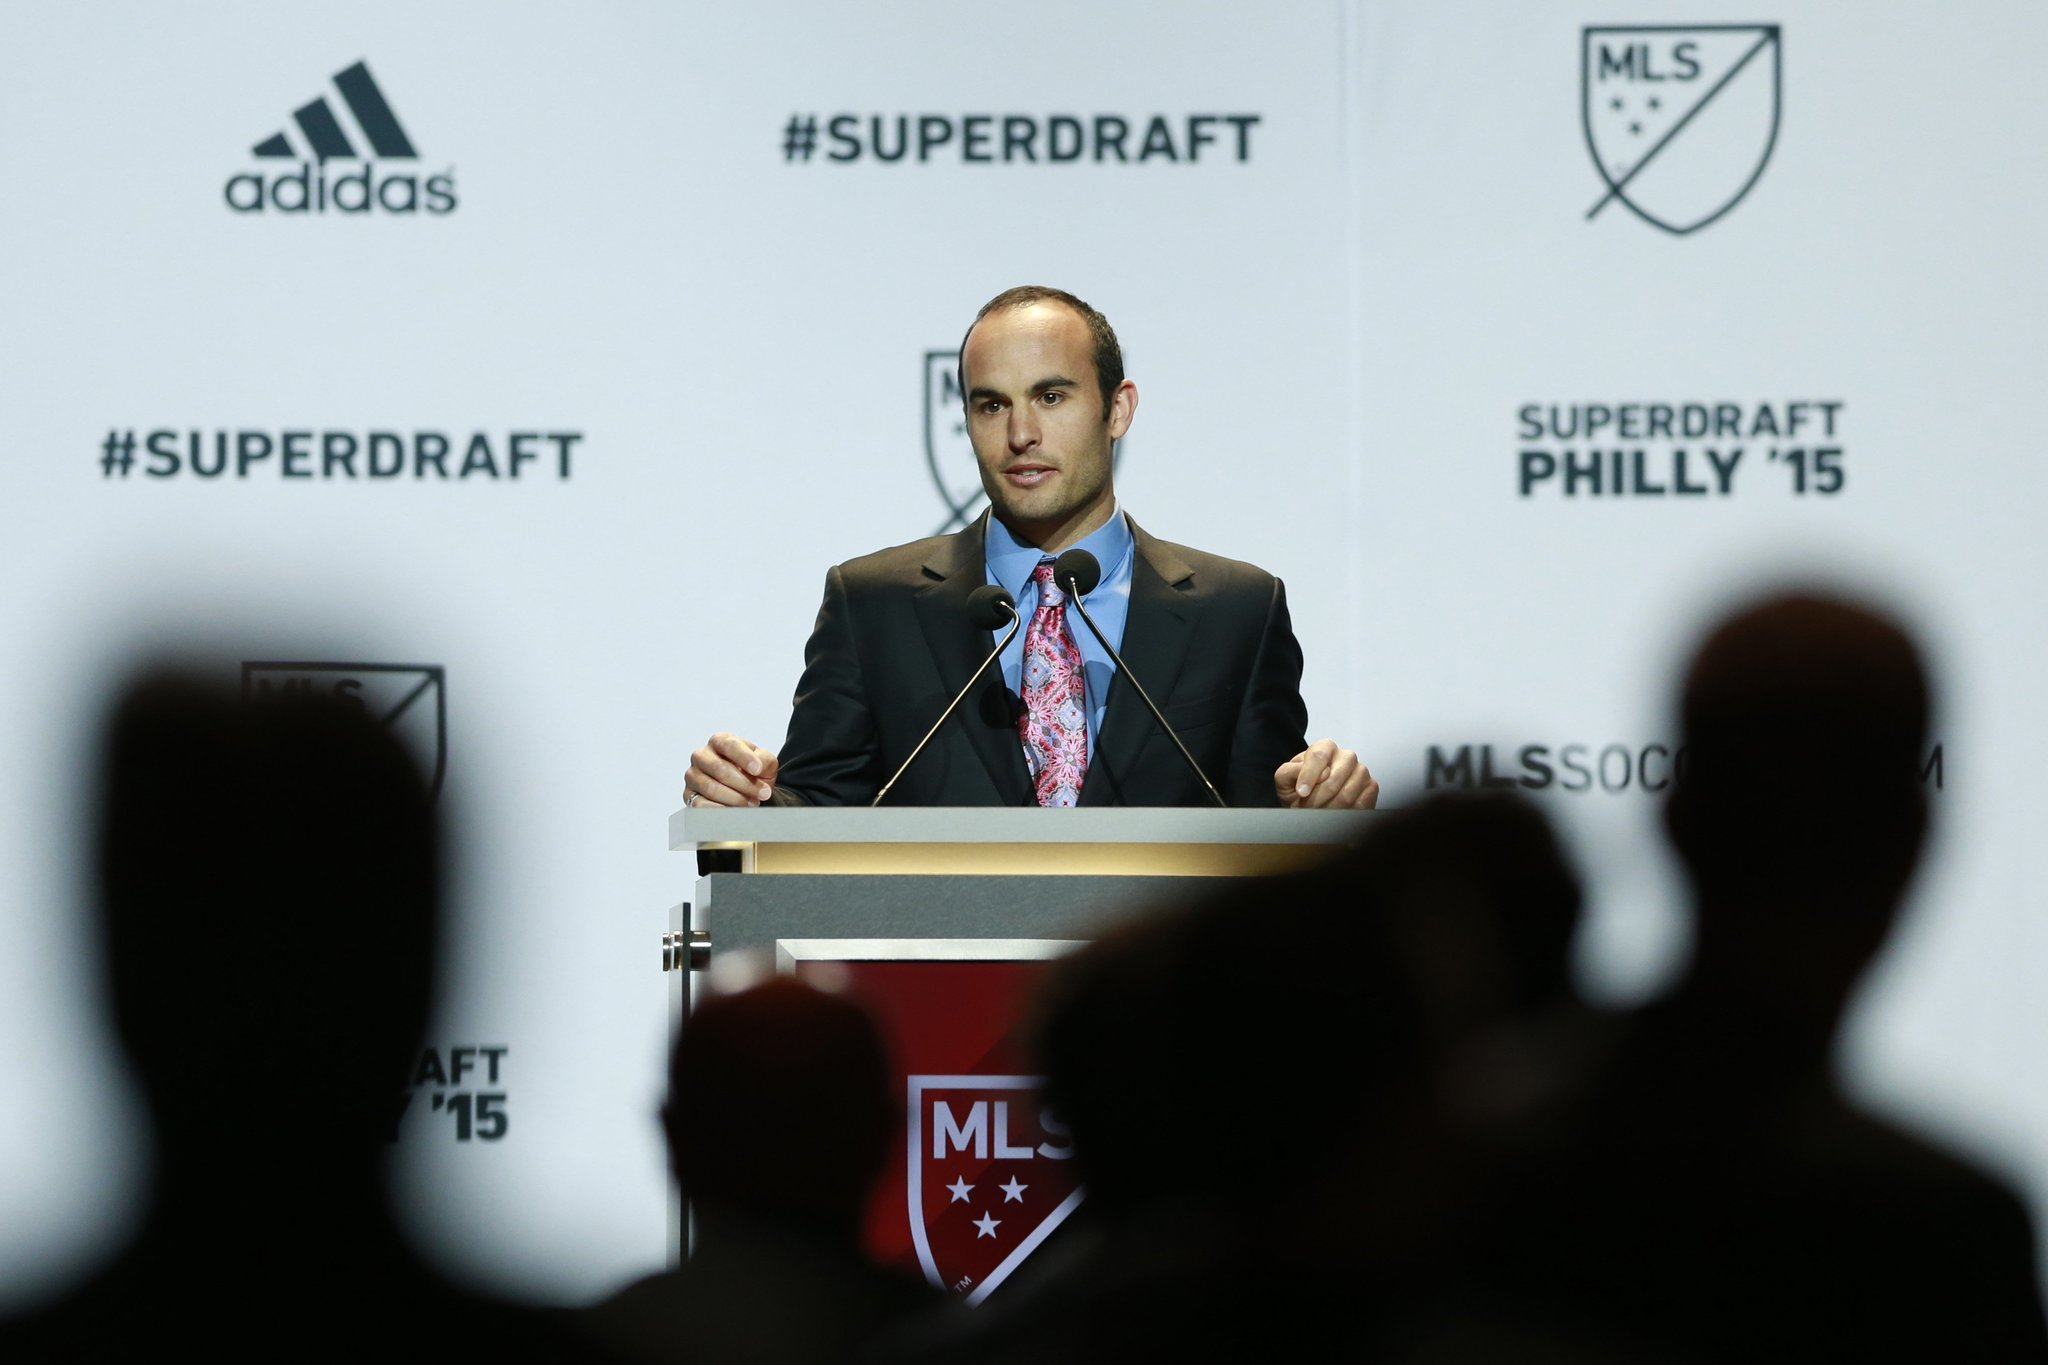 major league soccer names mvp award after landon donovan chicago